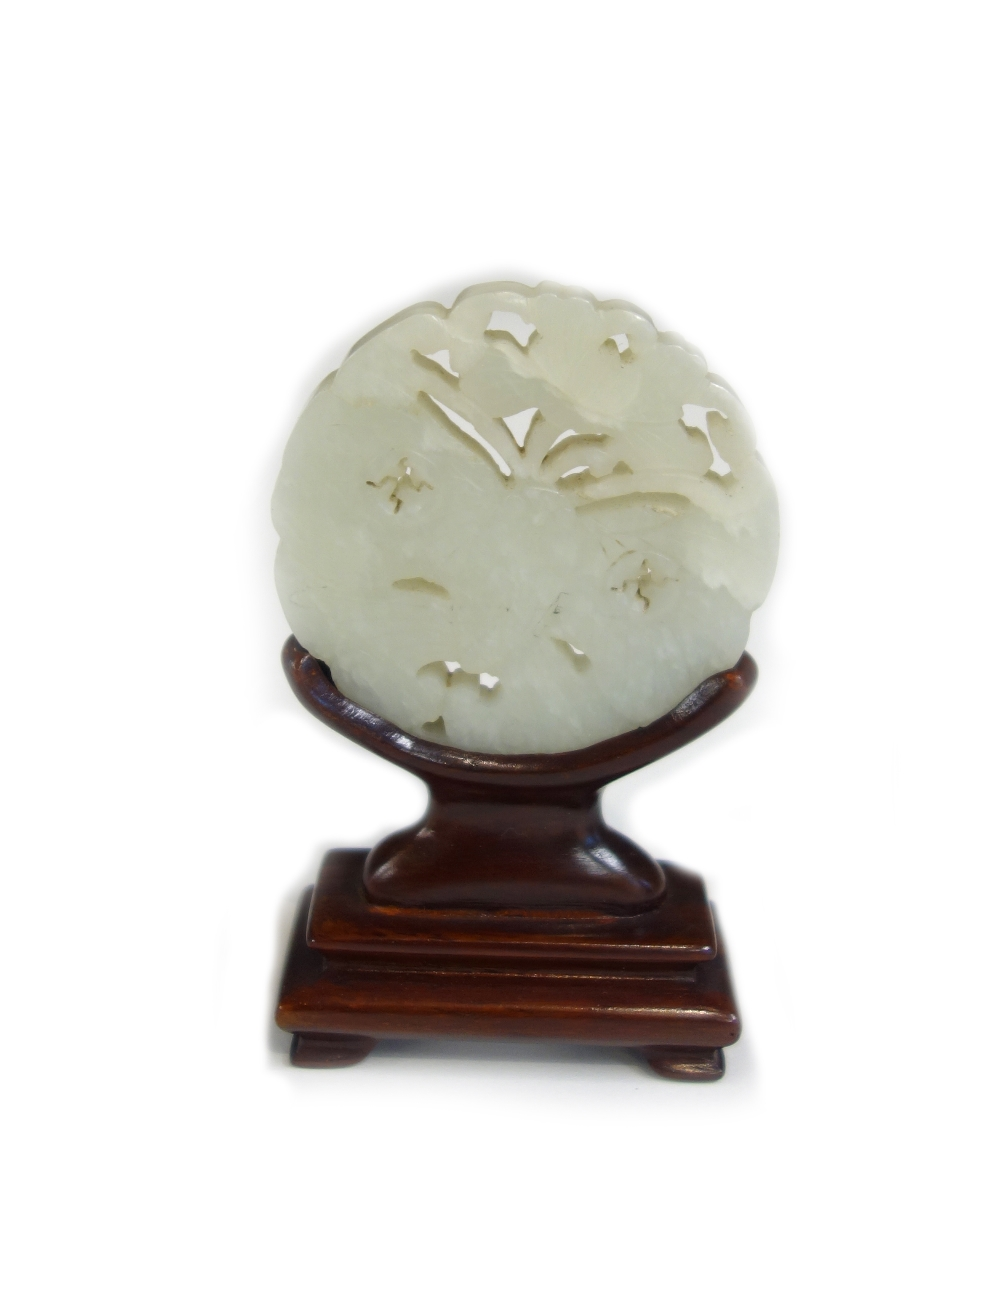 Lot 1436 - A Chinese pale celadon jade circular plaque, 20th century,